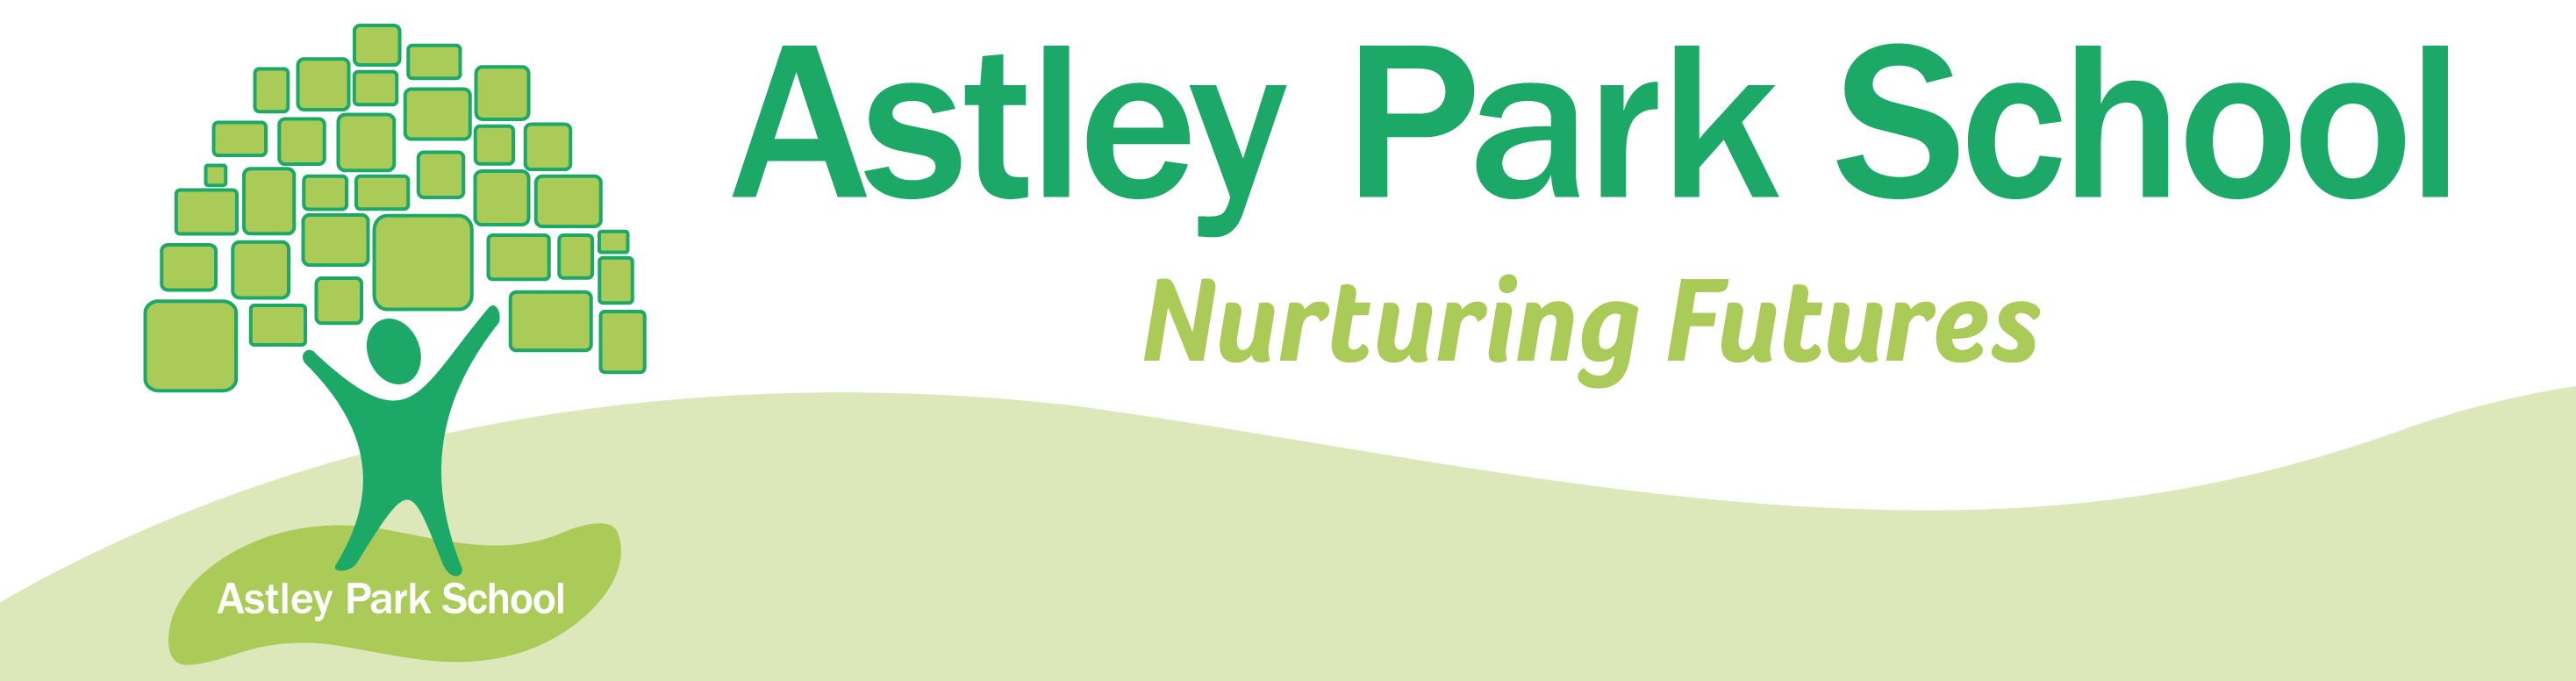 Oak | Astley Park School